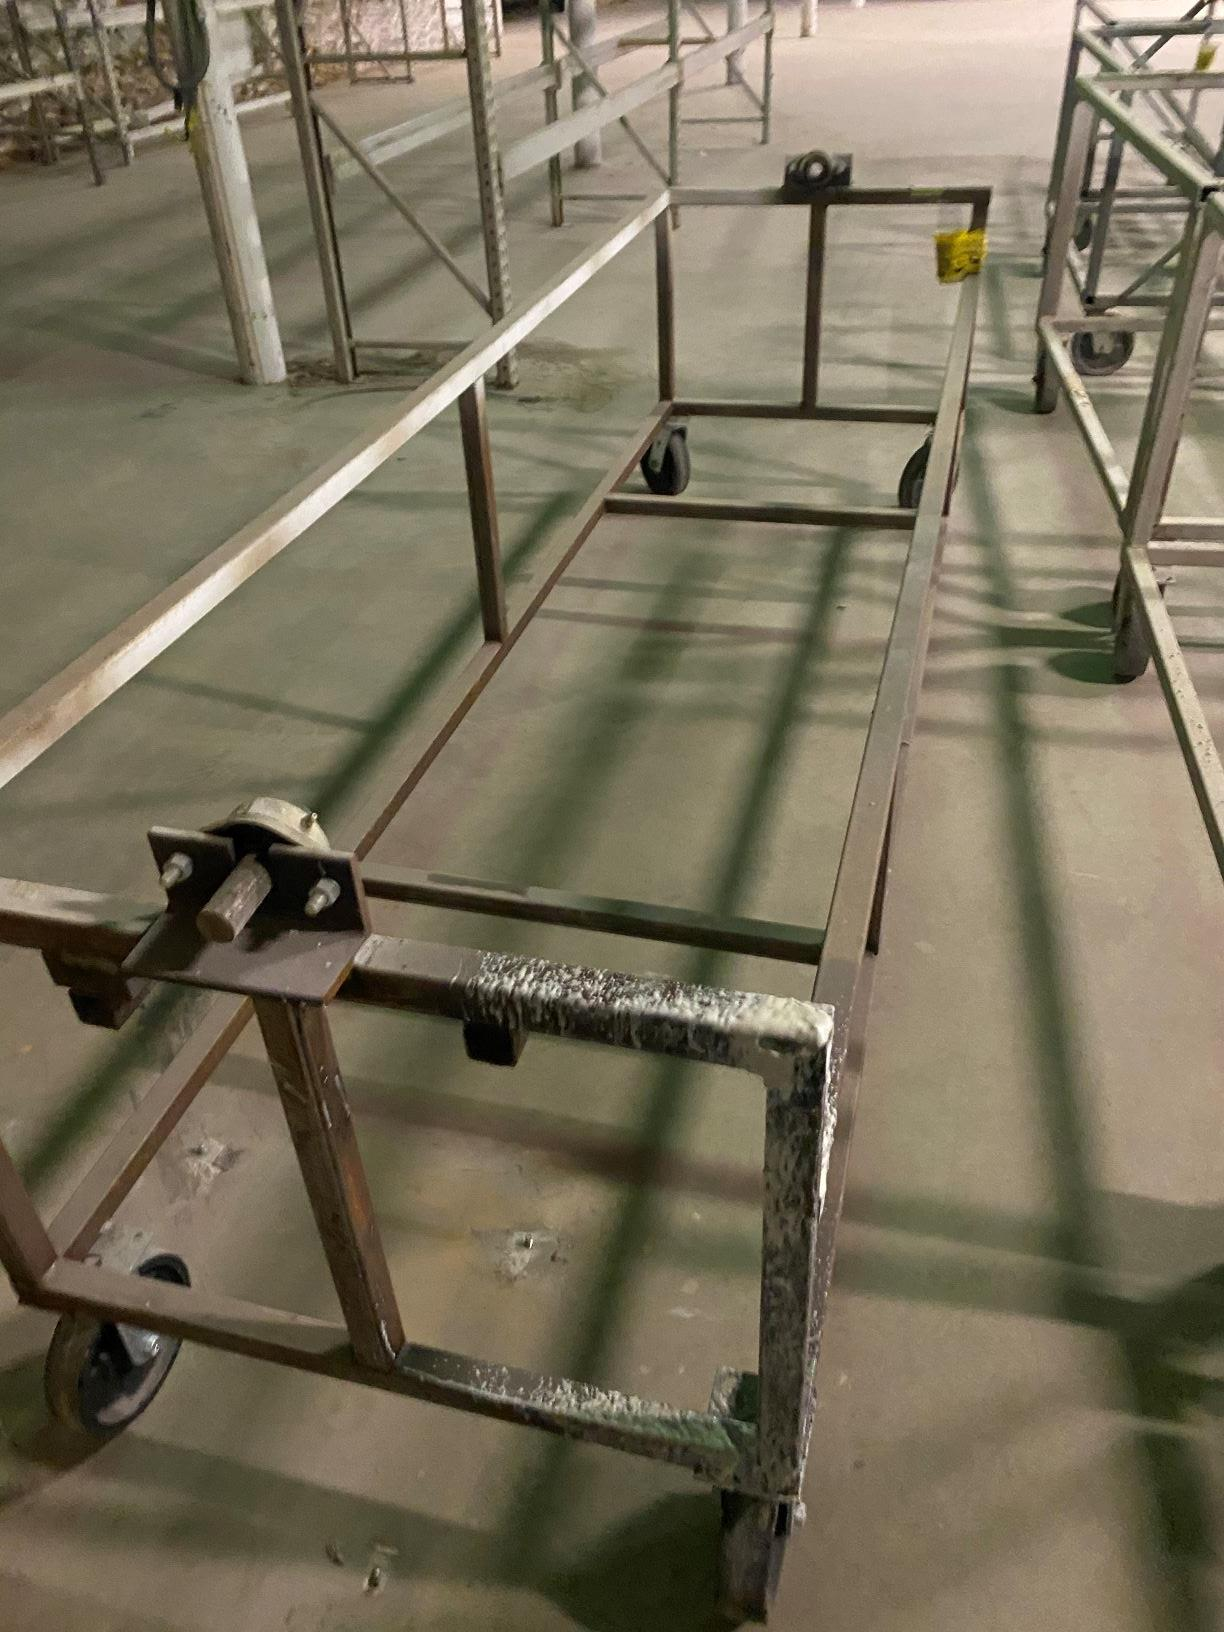 Heavy Duty Rolling Carts Various sizes Lot of approx. 25 - Image 4 of 6